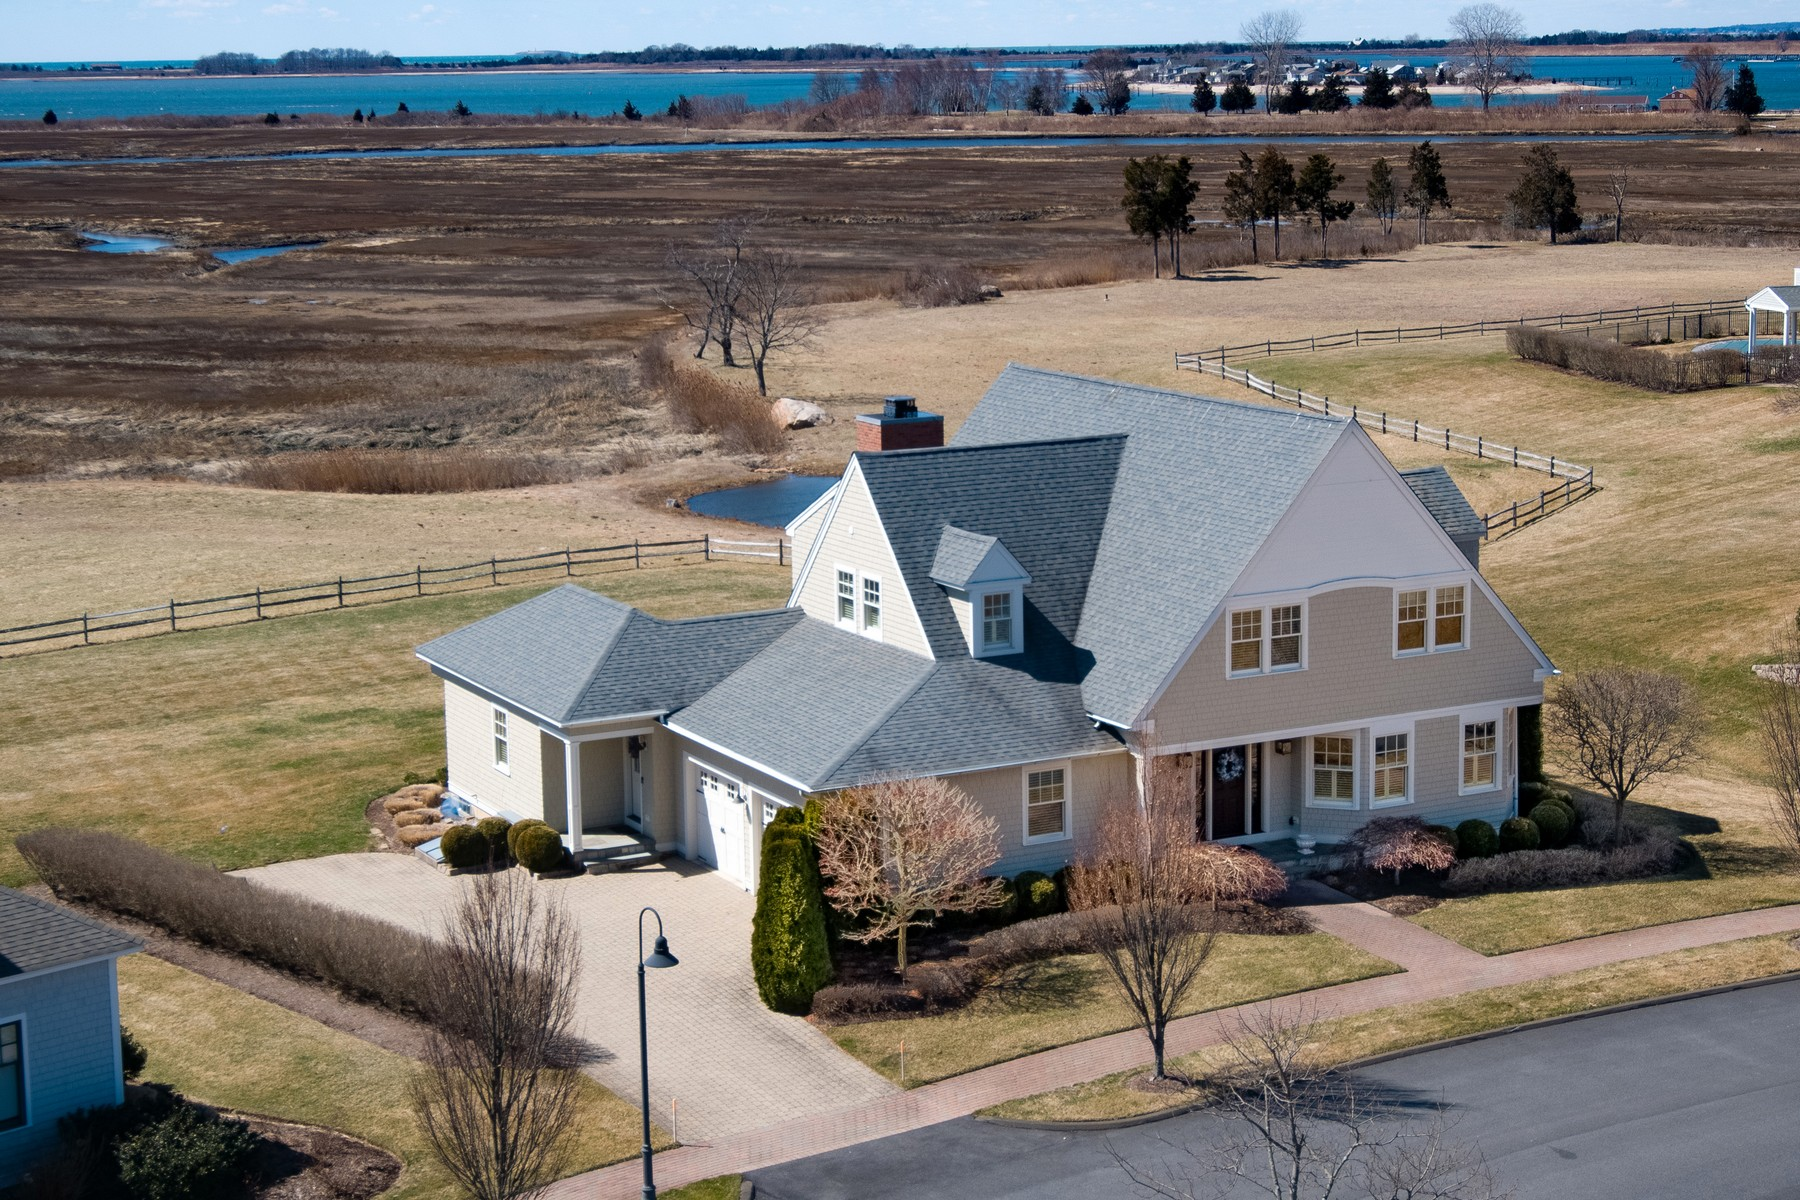 Single Family Homes for Sale at Enjoy Glorious Sunsets From this Low Maintenance Home 9 Osprey Commons South Clinton, Connecticut 06413 United States